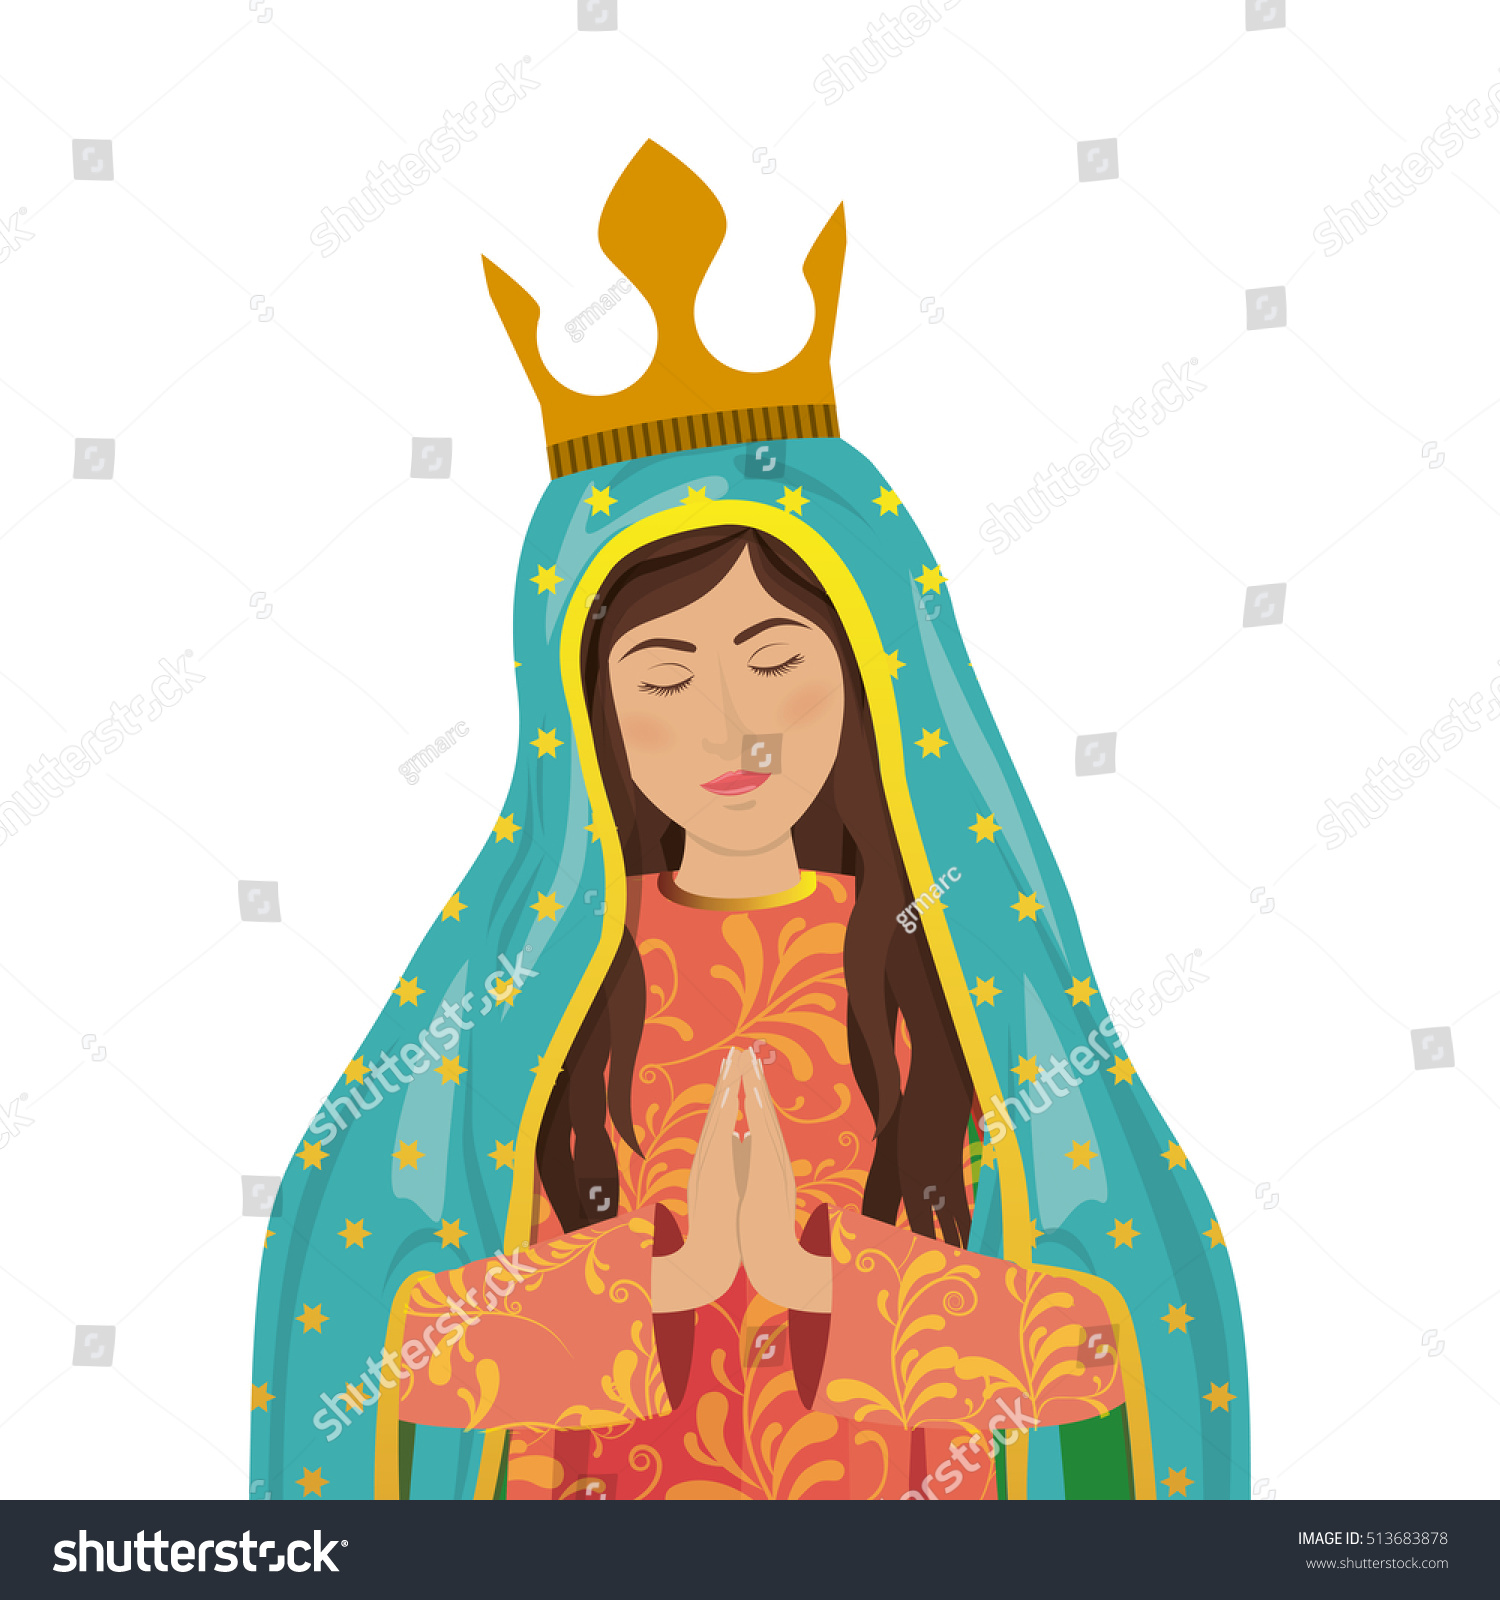 Where learn Virgin mary designs have quickly